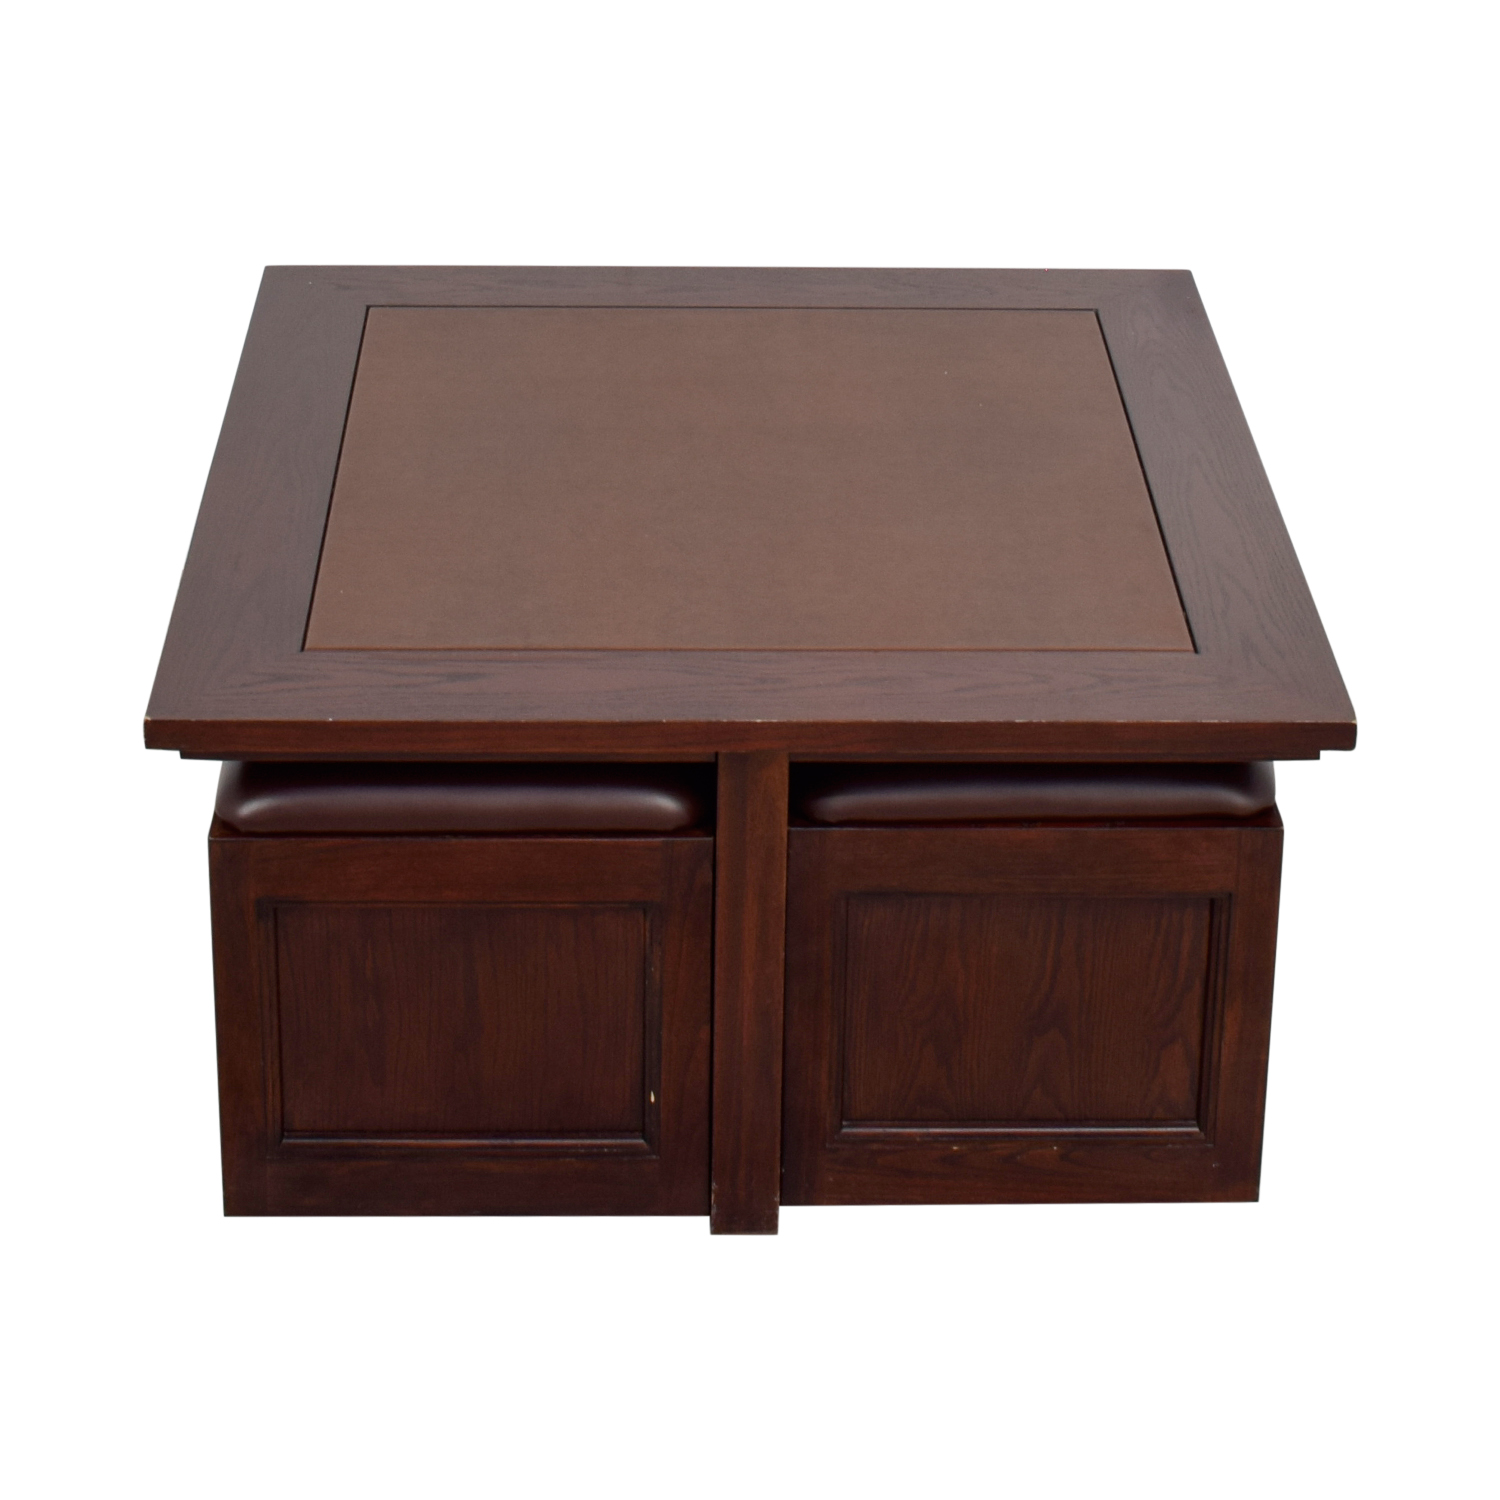 shop Macy's Cherry Wood Square Coffee Table with Seat Storage Macy's